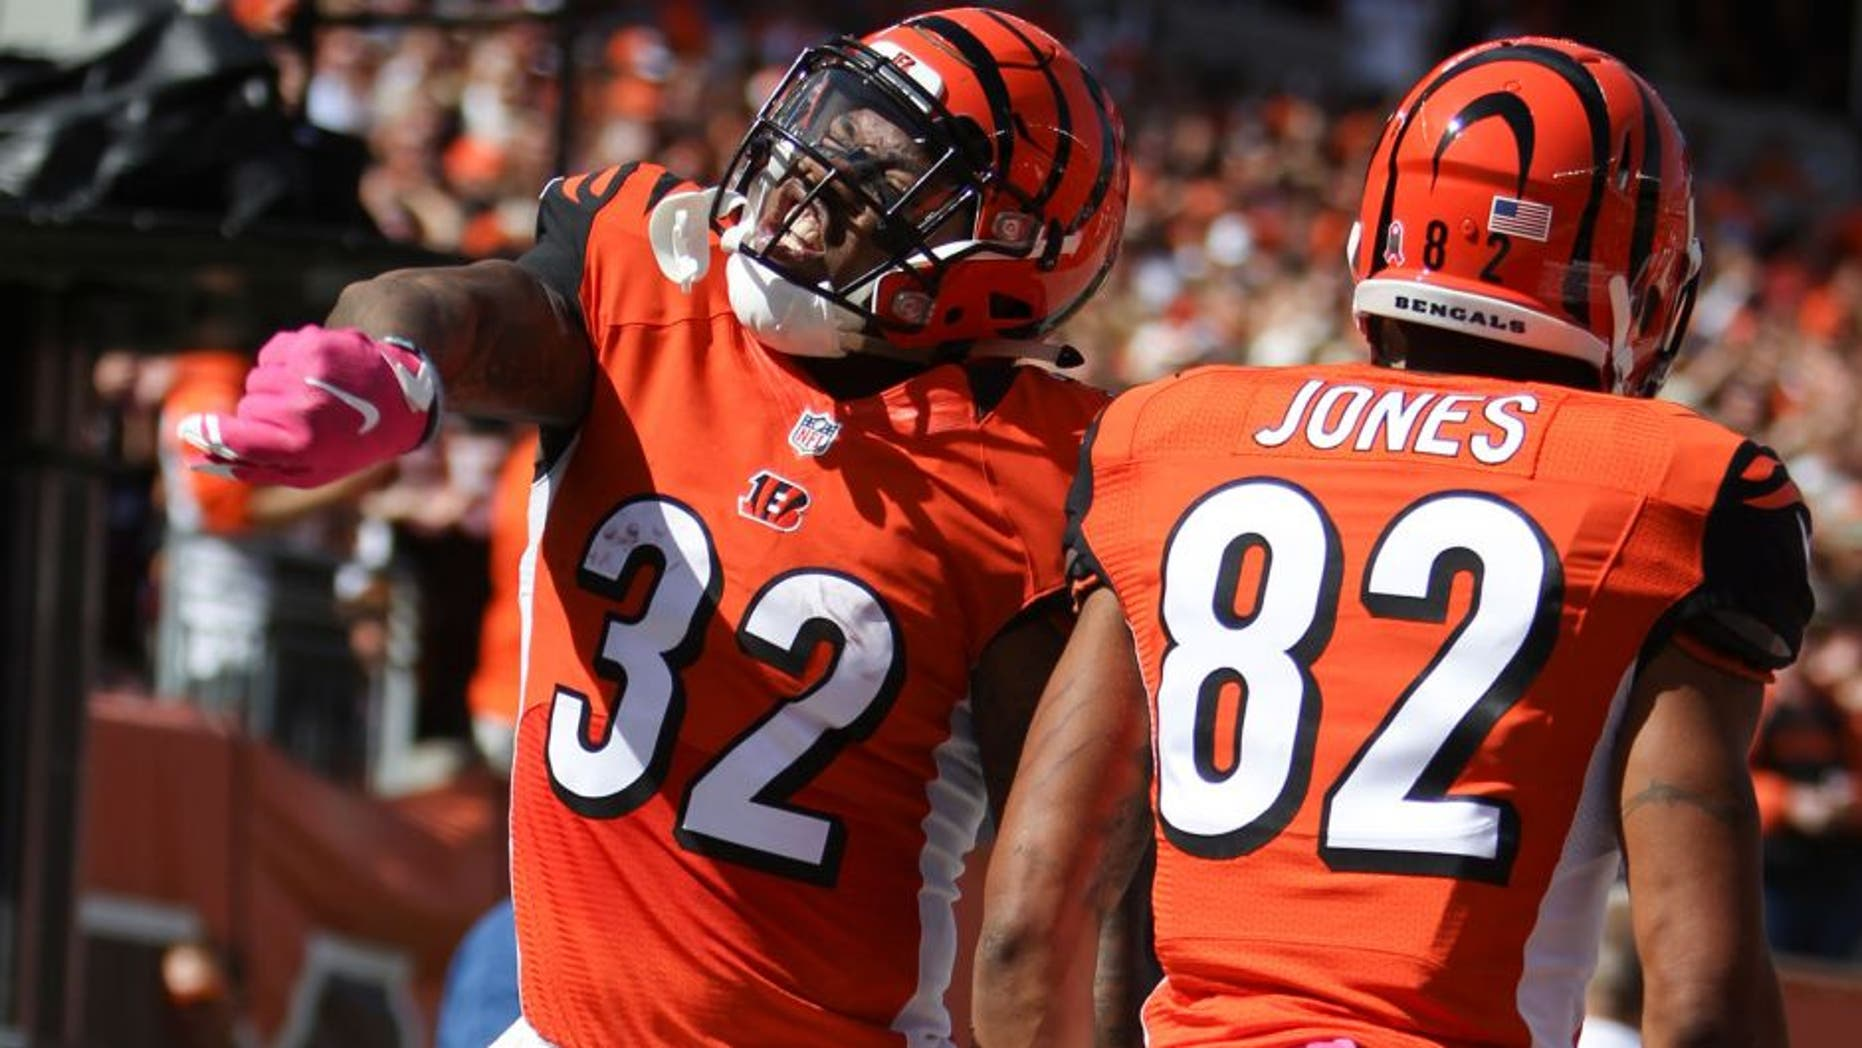 Cincinnati Bengals running back Jeremy Hill (32) celebrates after scoring a touchdown in the first half of a NFL football game against the Kansas City Chiefs, Sunday, Oct. 4, 2015, in Cincinnati. (AP Photo/Frank Victores)